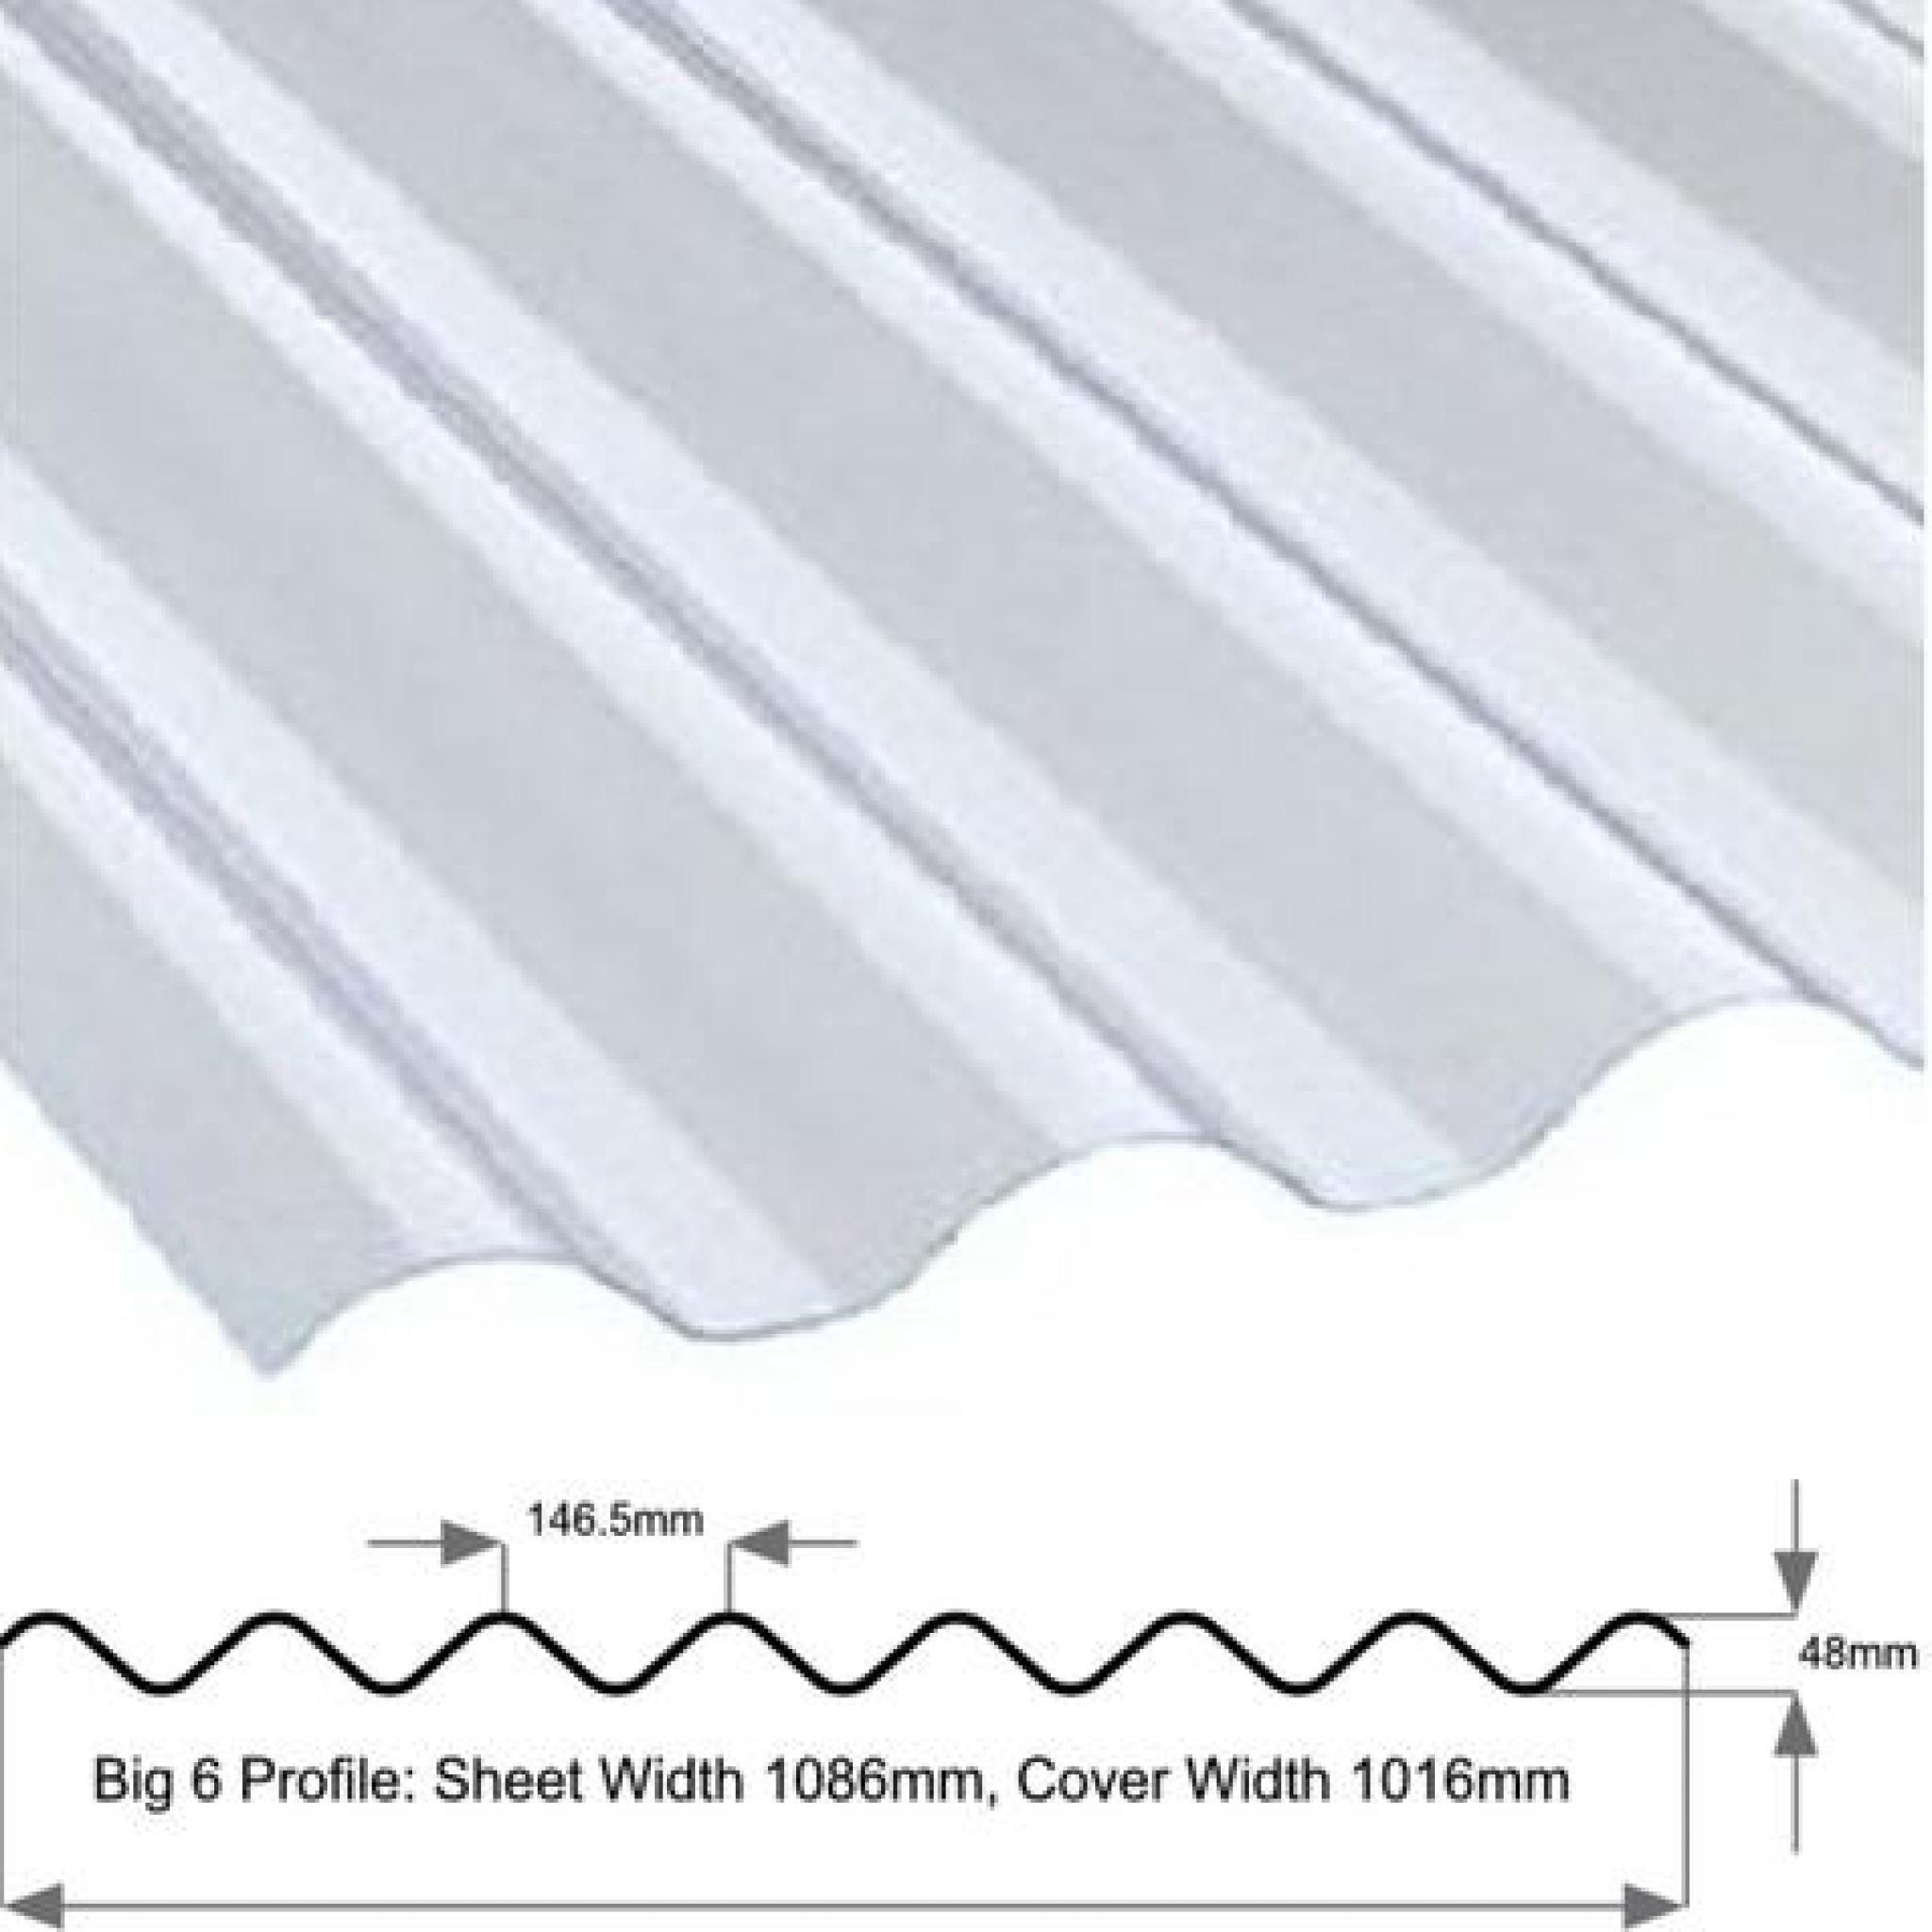 Big 6 Corrugated Pvc Roof Sheet Clear 6 Profile